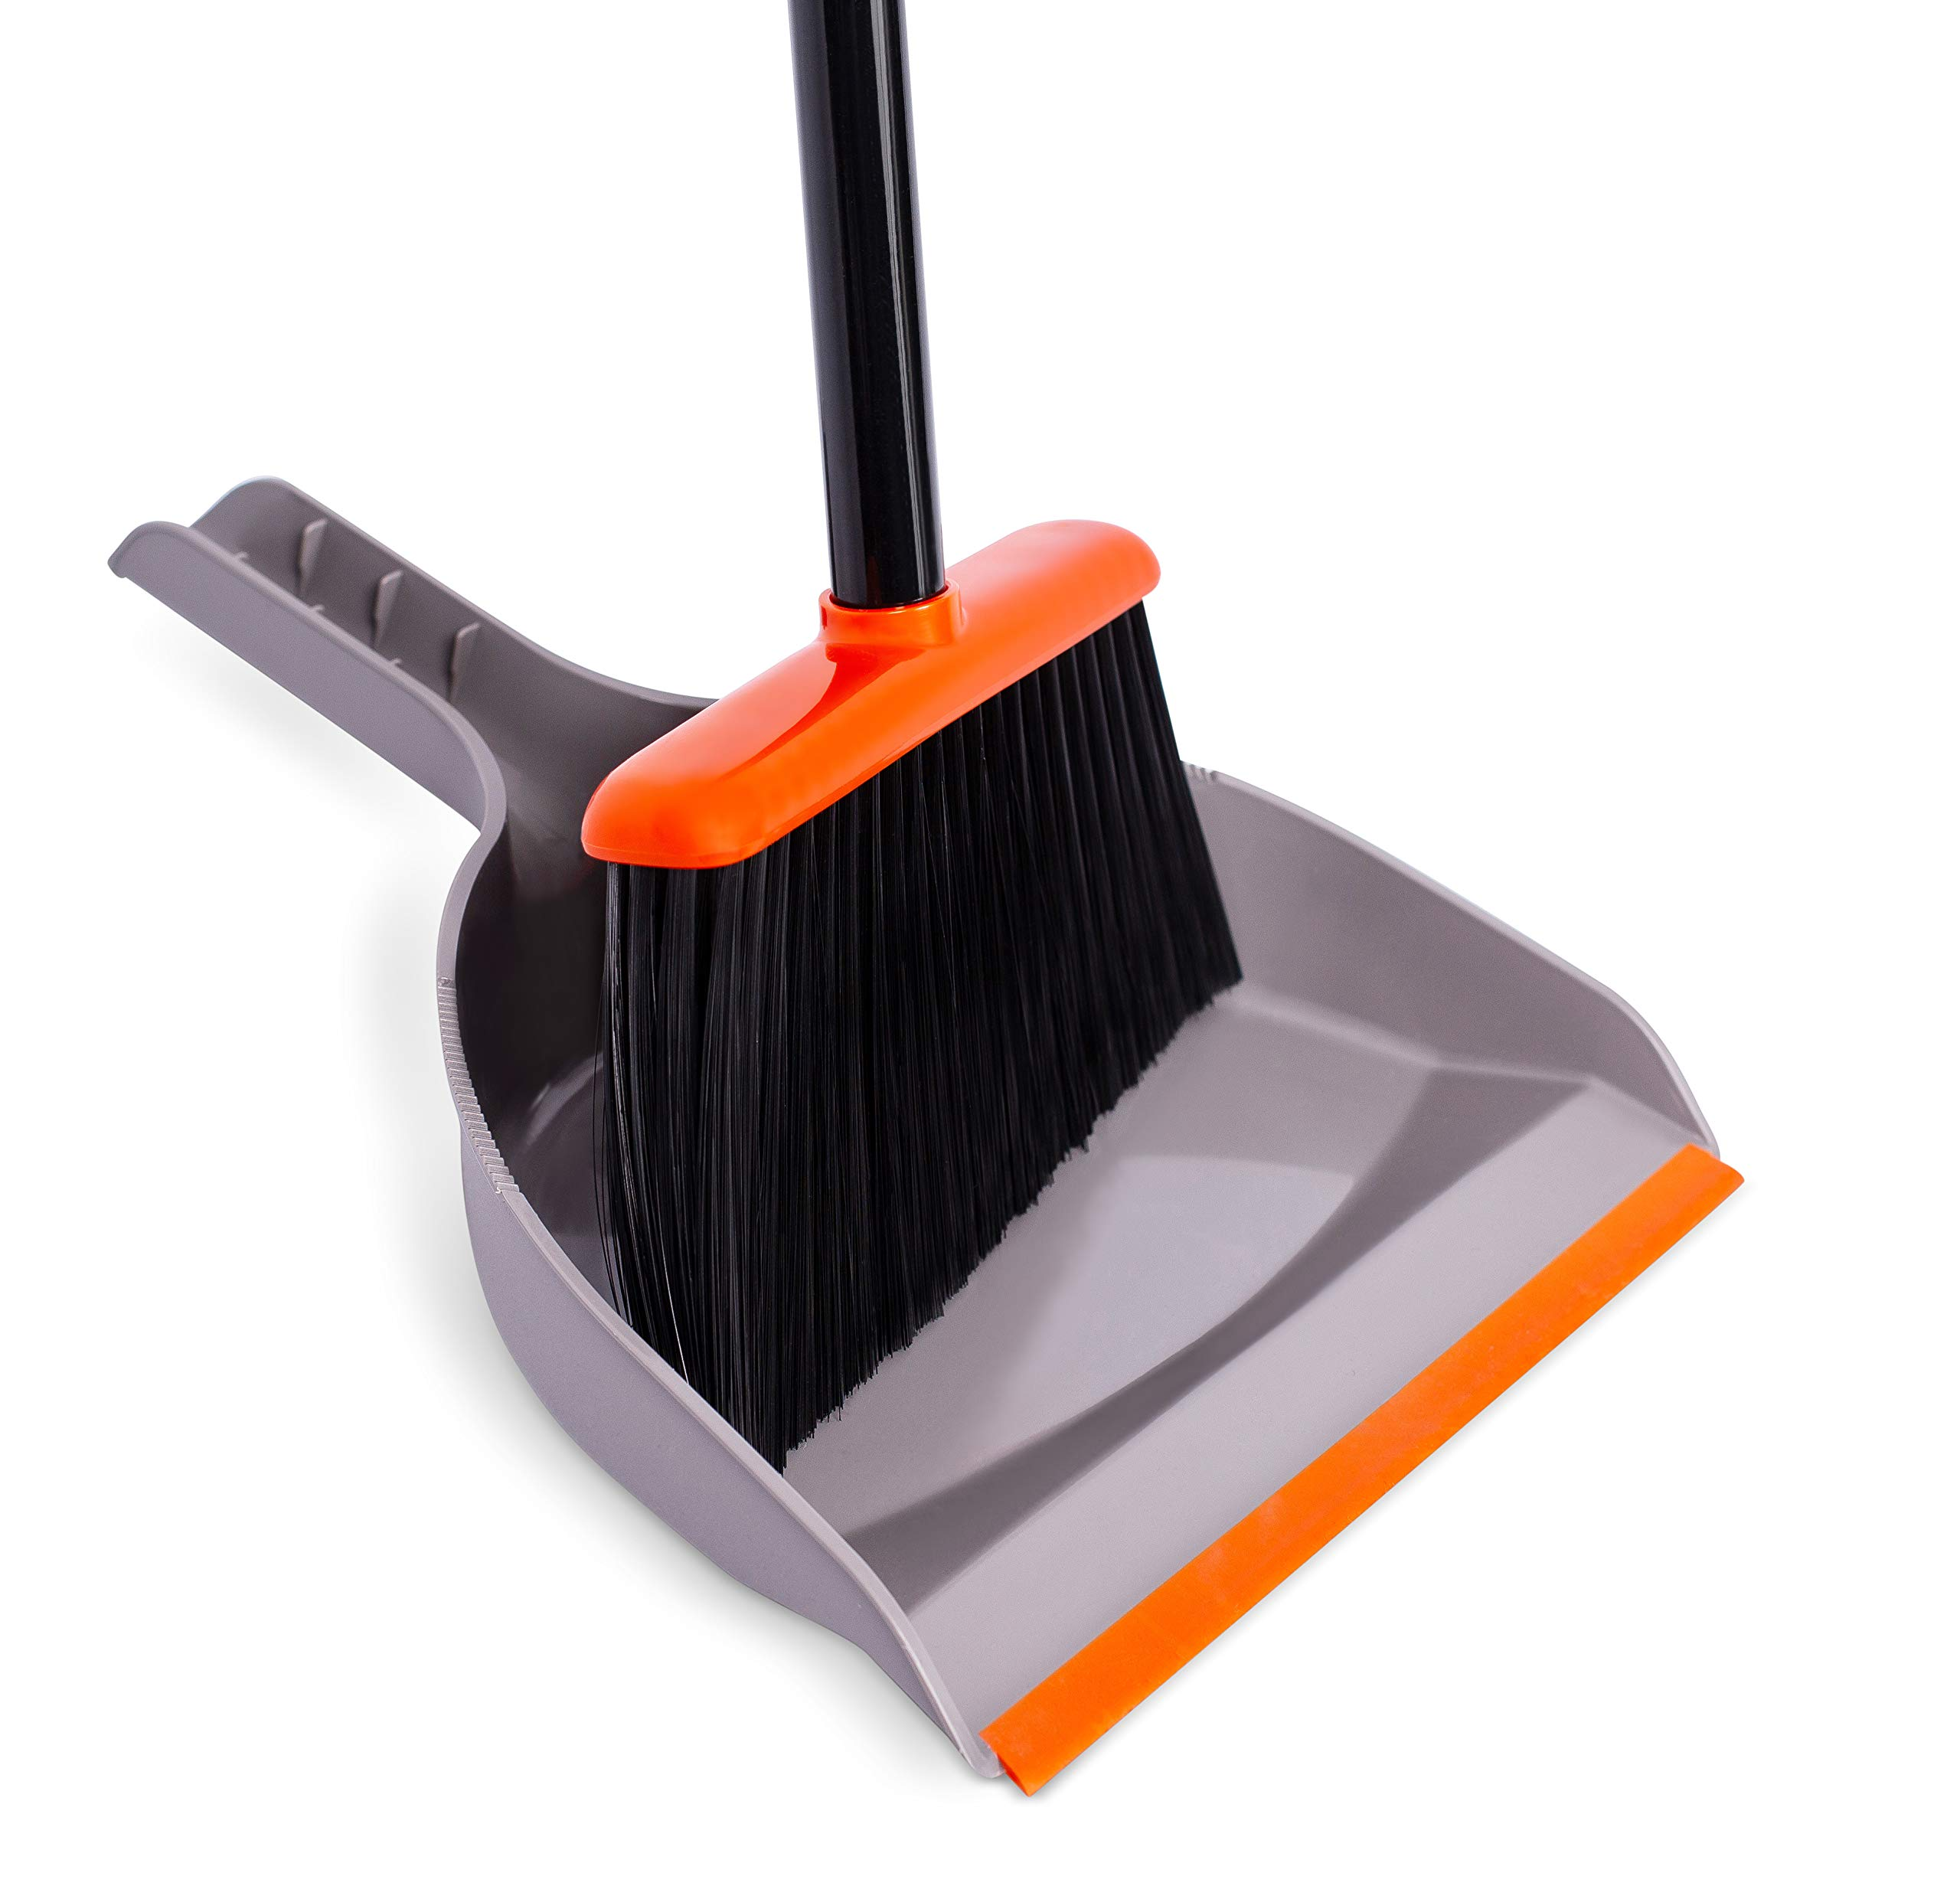 BirdRock Home Broom and Dustpan Set - Orange and Grey Durable Set - Indoor or Outdoor - Sweep Combo Great for Kitchen, Home, Garage and Office - Clip On by BIRDROCK HOME